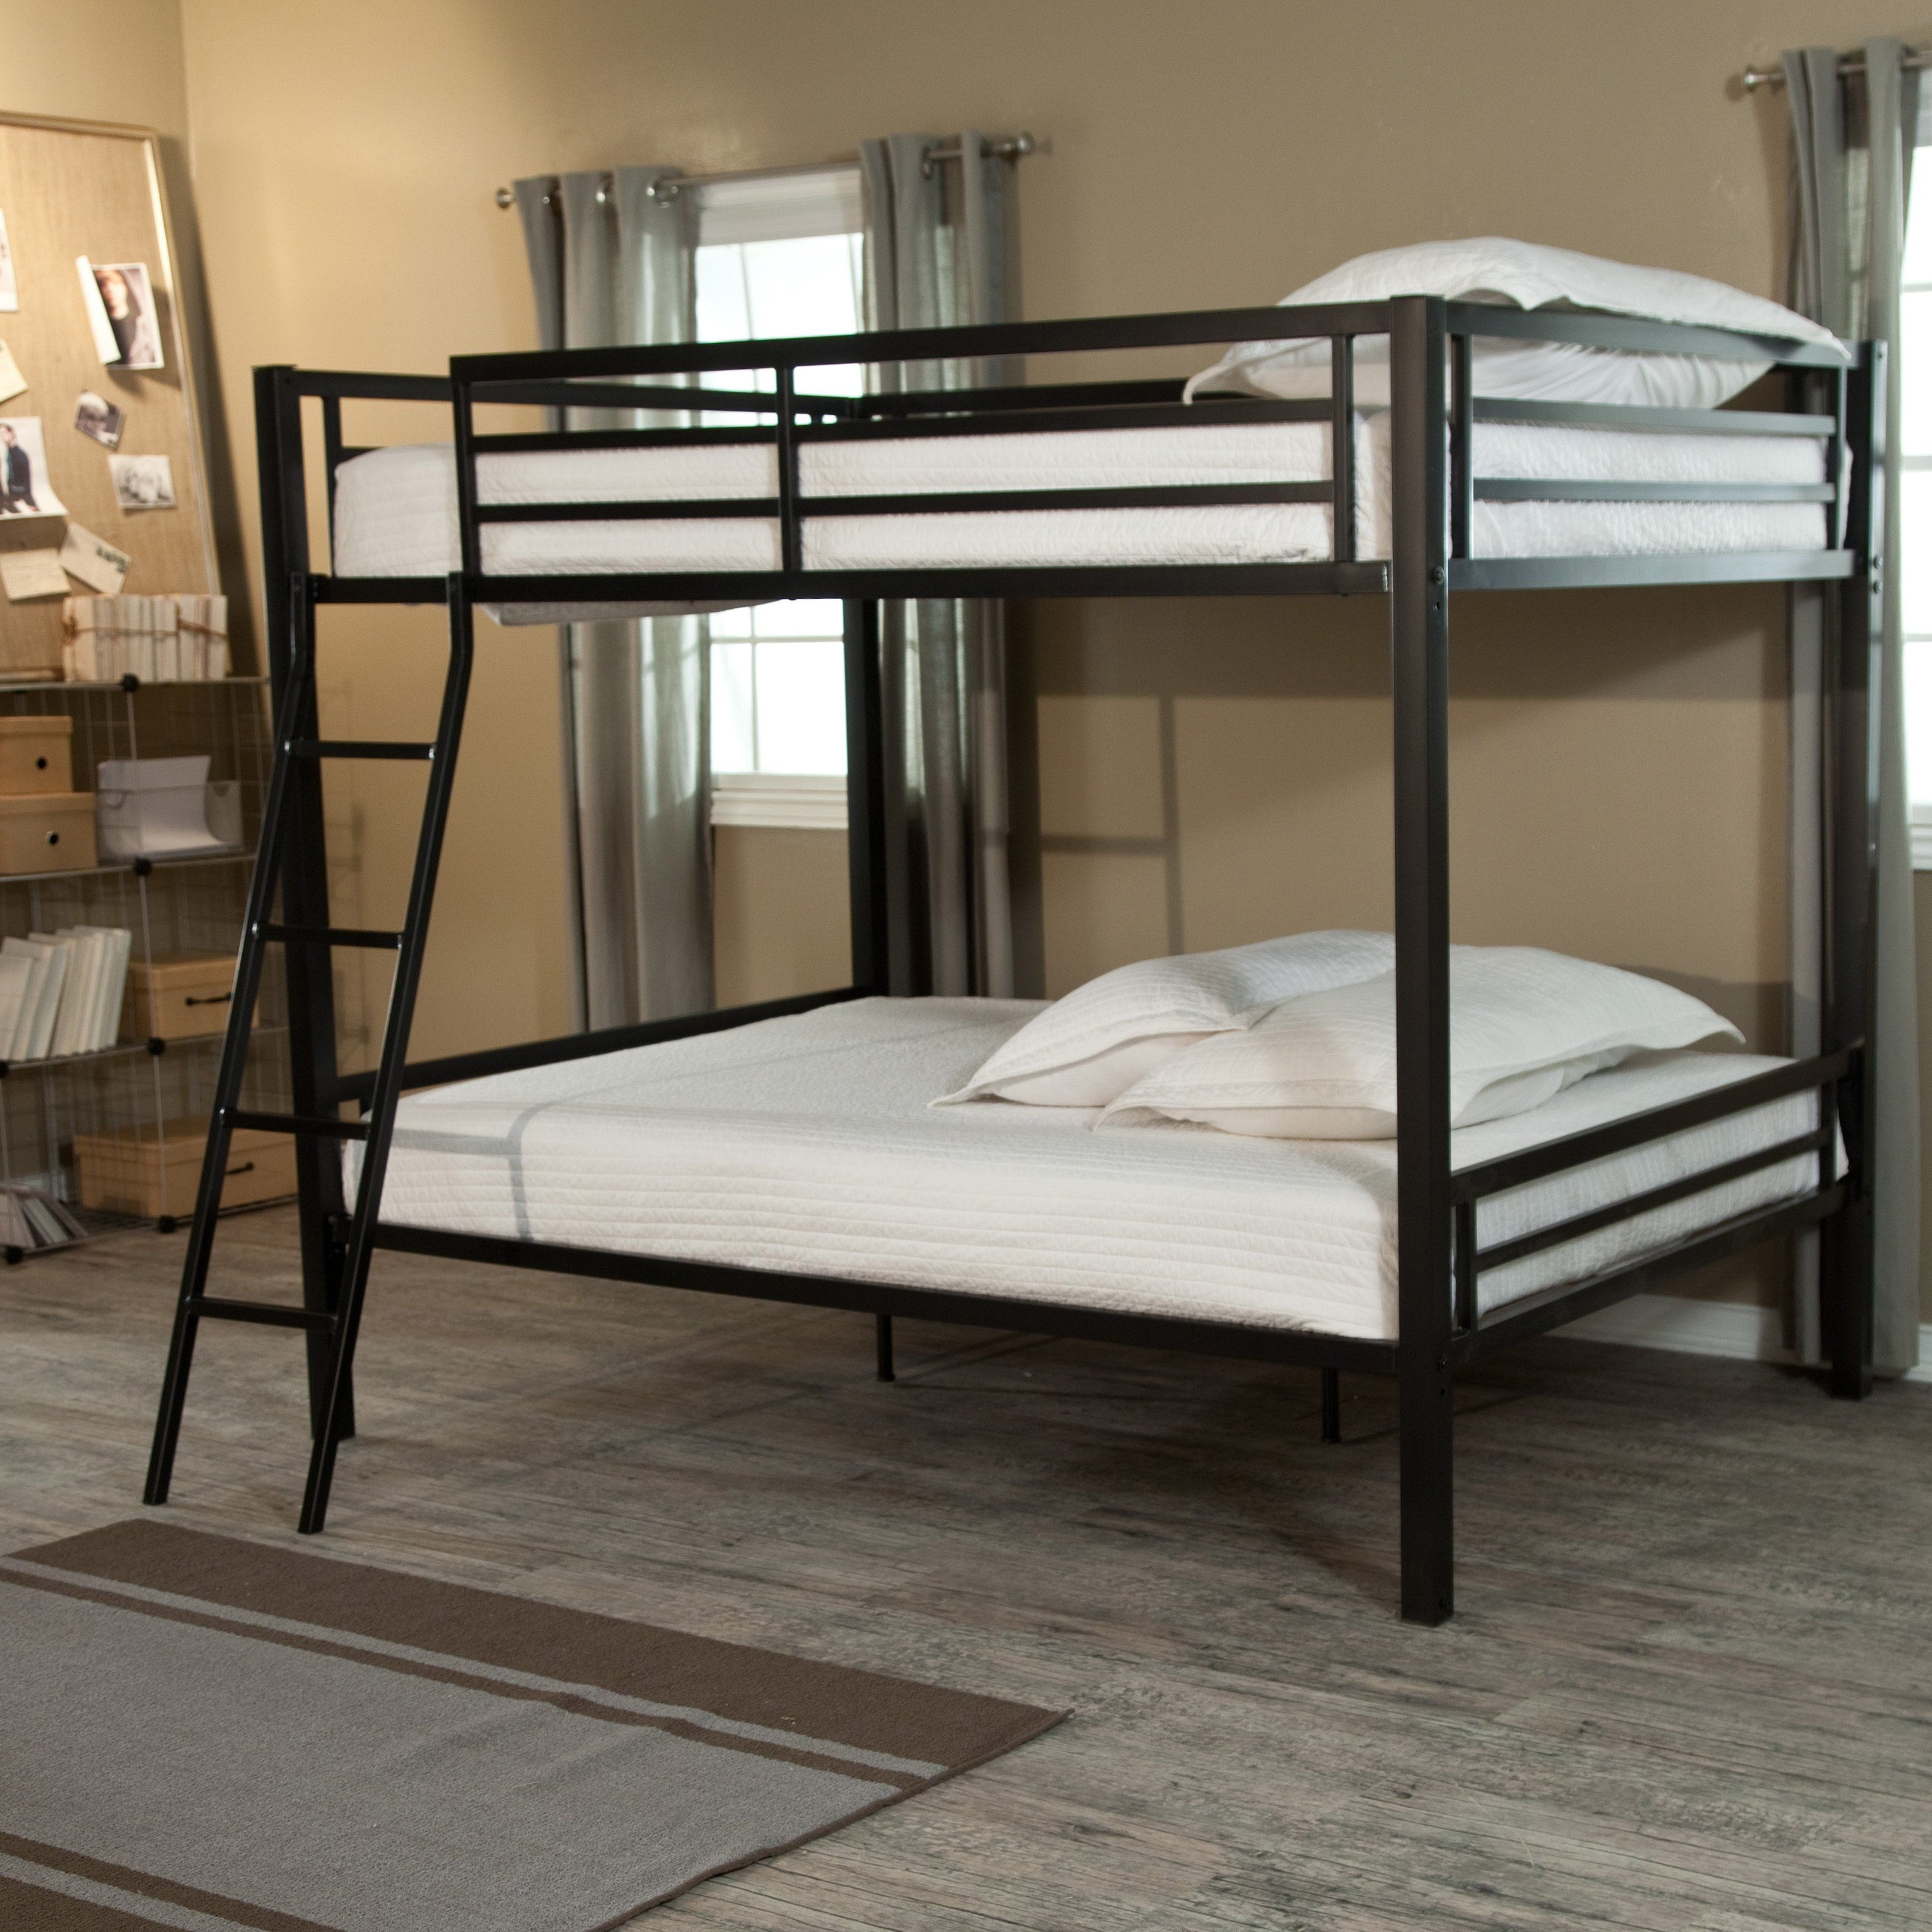 29 Simple Elegant Photo Of Fabulous Bunk Bed Ideas To Inspire You